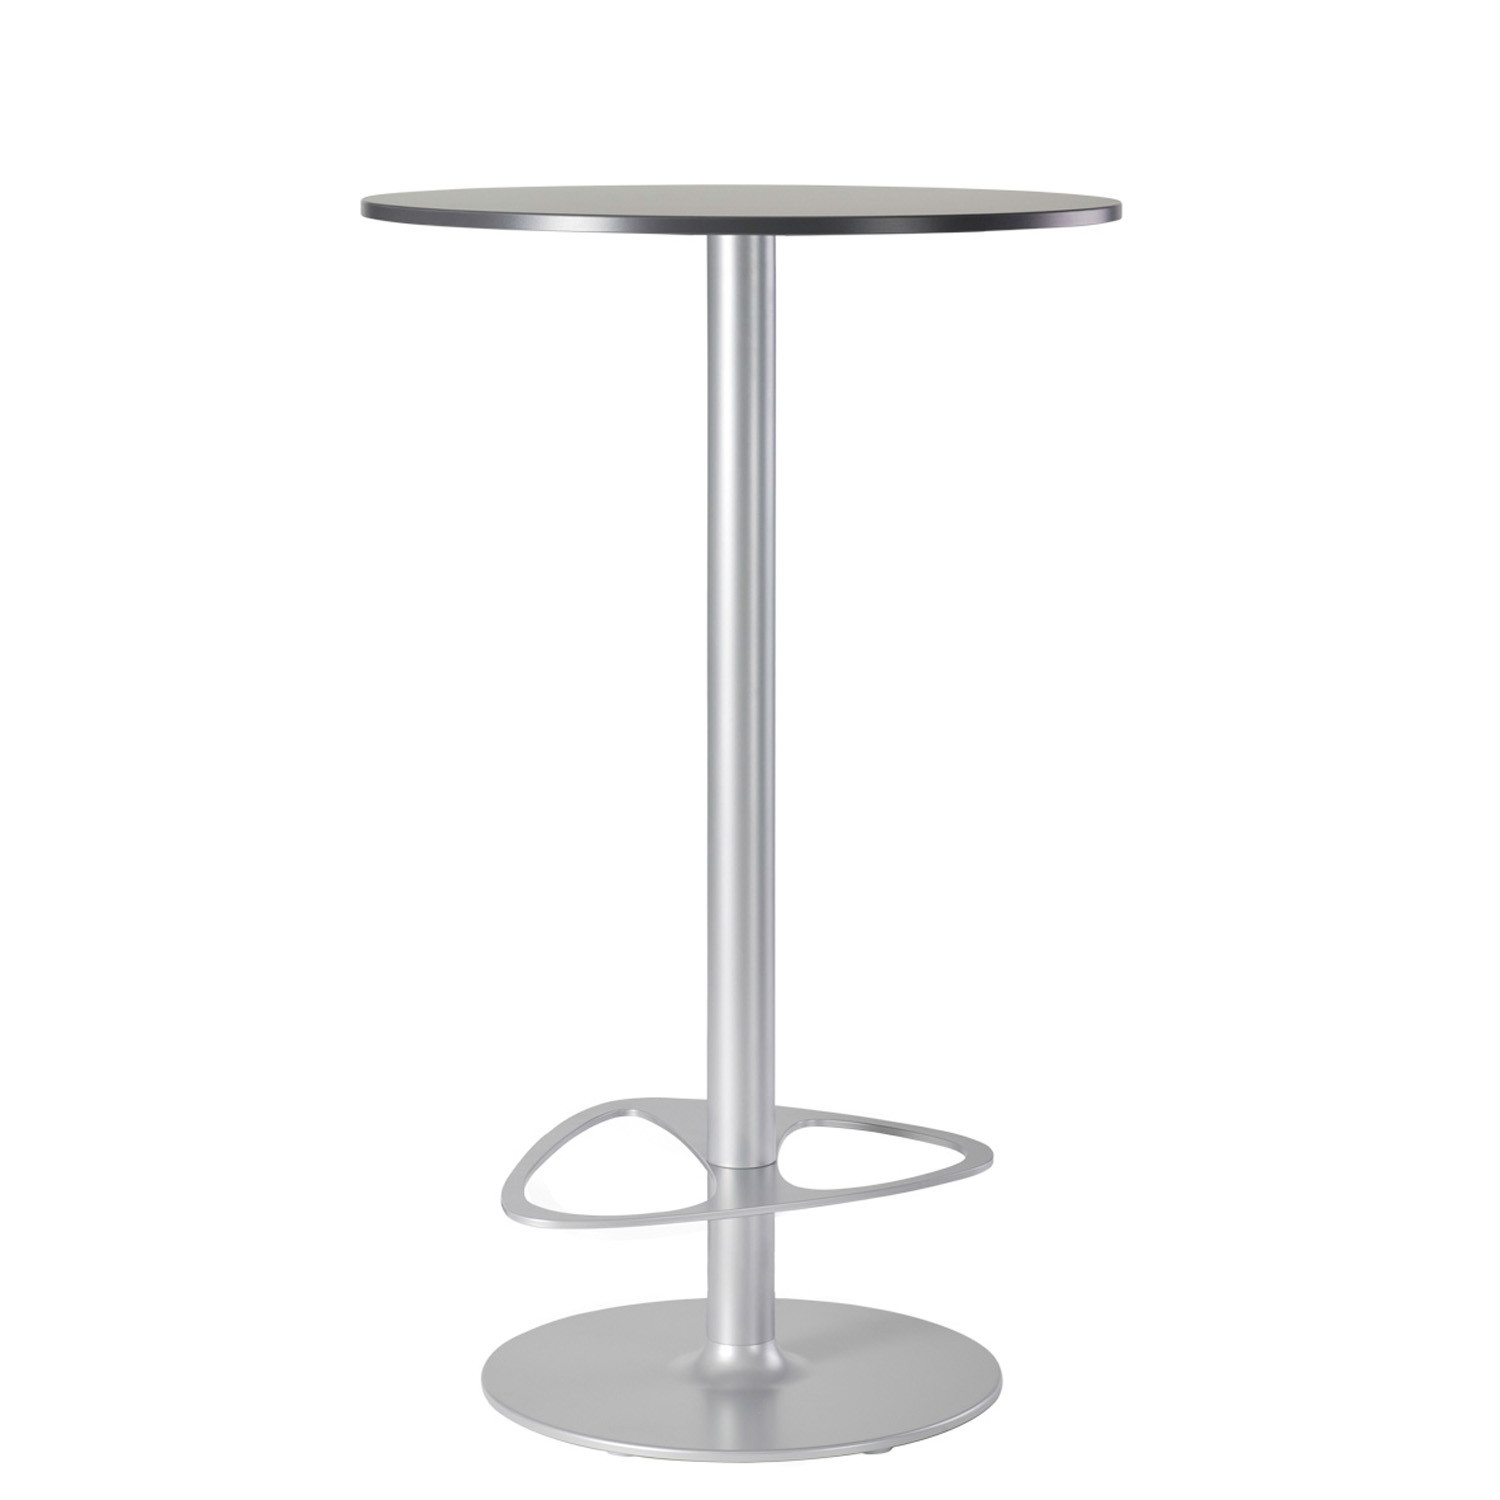 Macao Standing Table with Footrest